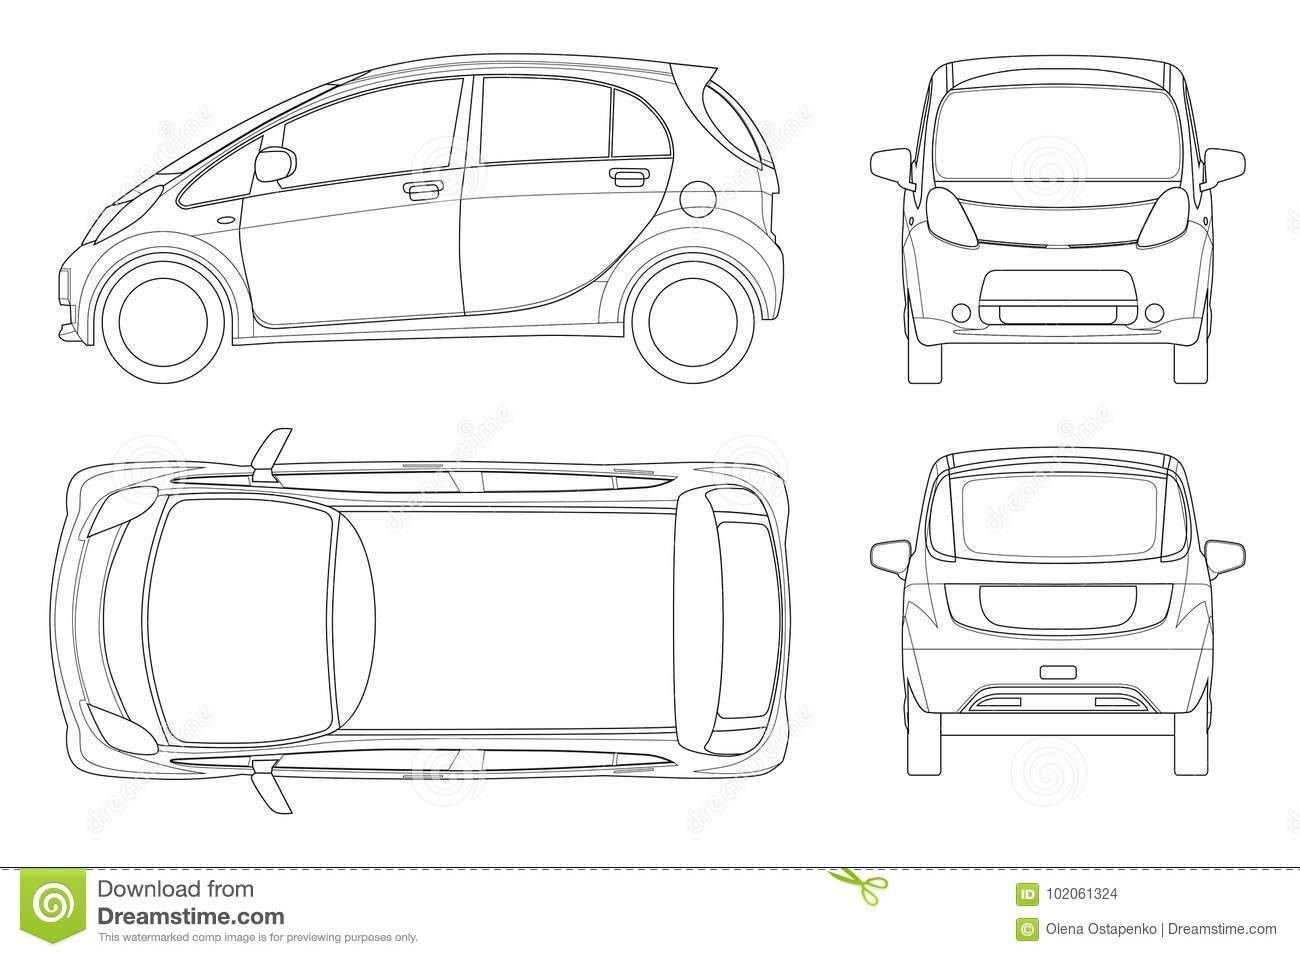 Electric Vehicle Or Hybrid Car In Outline. Eco-friendly Hi